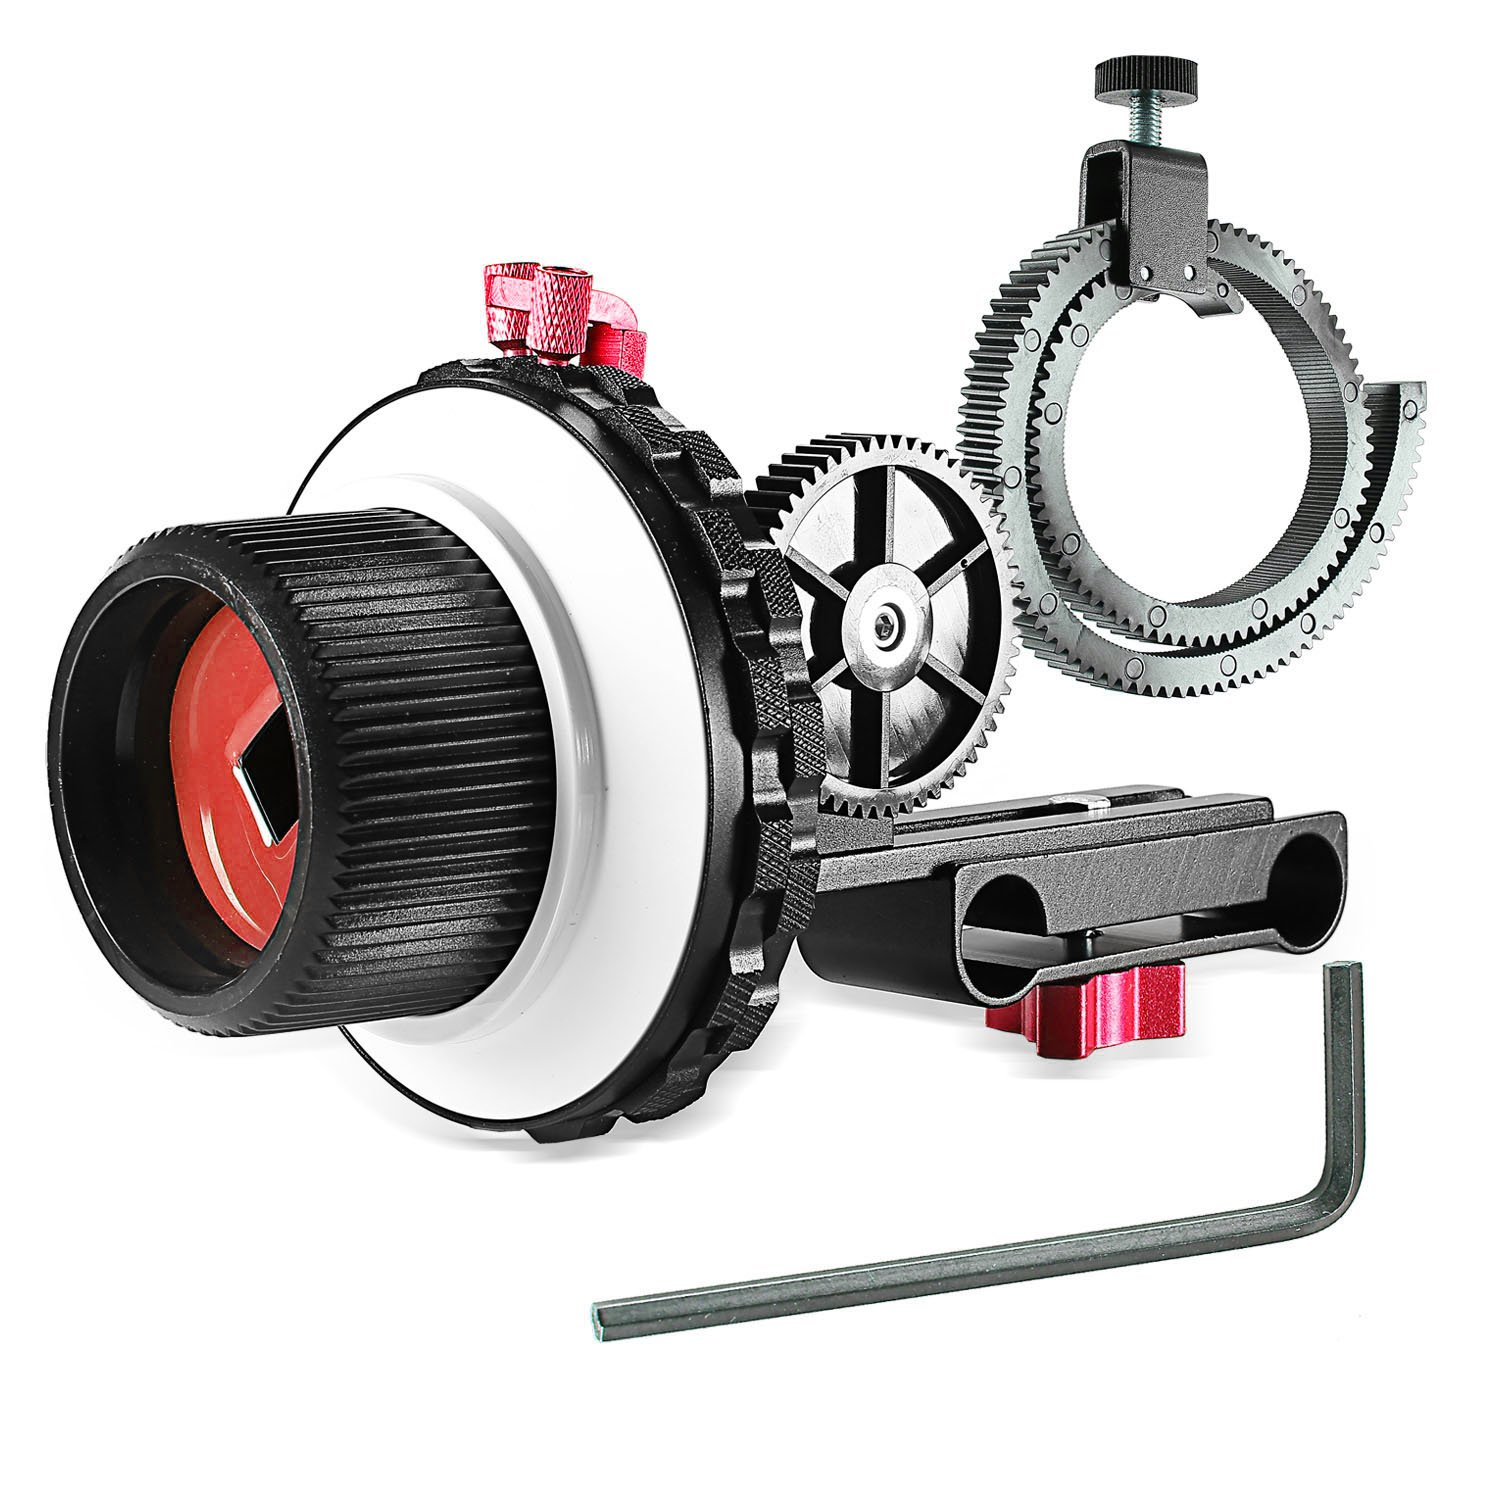 Neewer A-B Stop Follow Focus with Gear Ring Belt for Canon Nikon Sony DSLR Camera DV Video Camcorder and More, Fits 15mm Rod Film Making System, Shoulder Support, Stabilizer, Movie Rig (Red and Black) 10090238